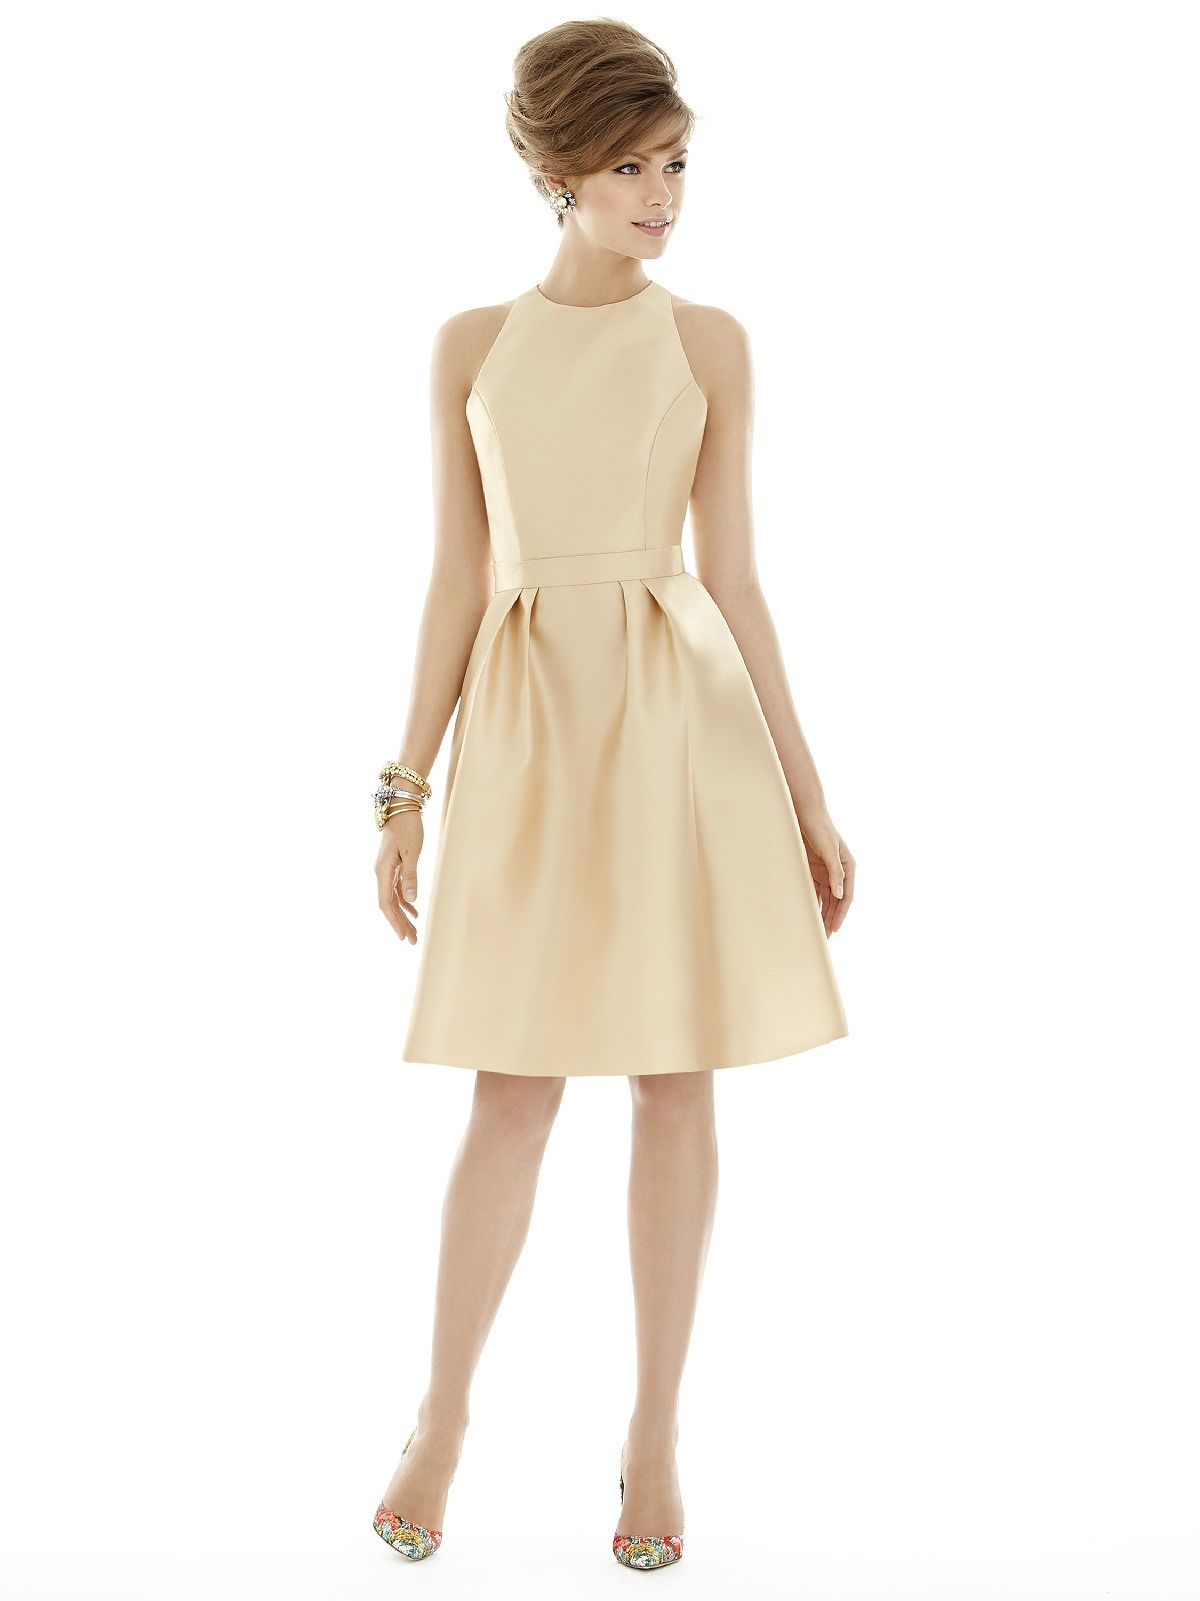 Shop alfred sung bridesmaid dress d696 in sateen twill at shop alfred sung bridesmaid dress d696 in sateen twill at weddington way find the ombrellifo Images